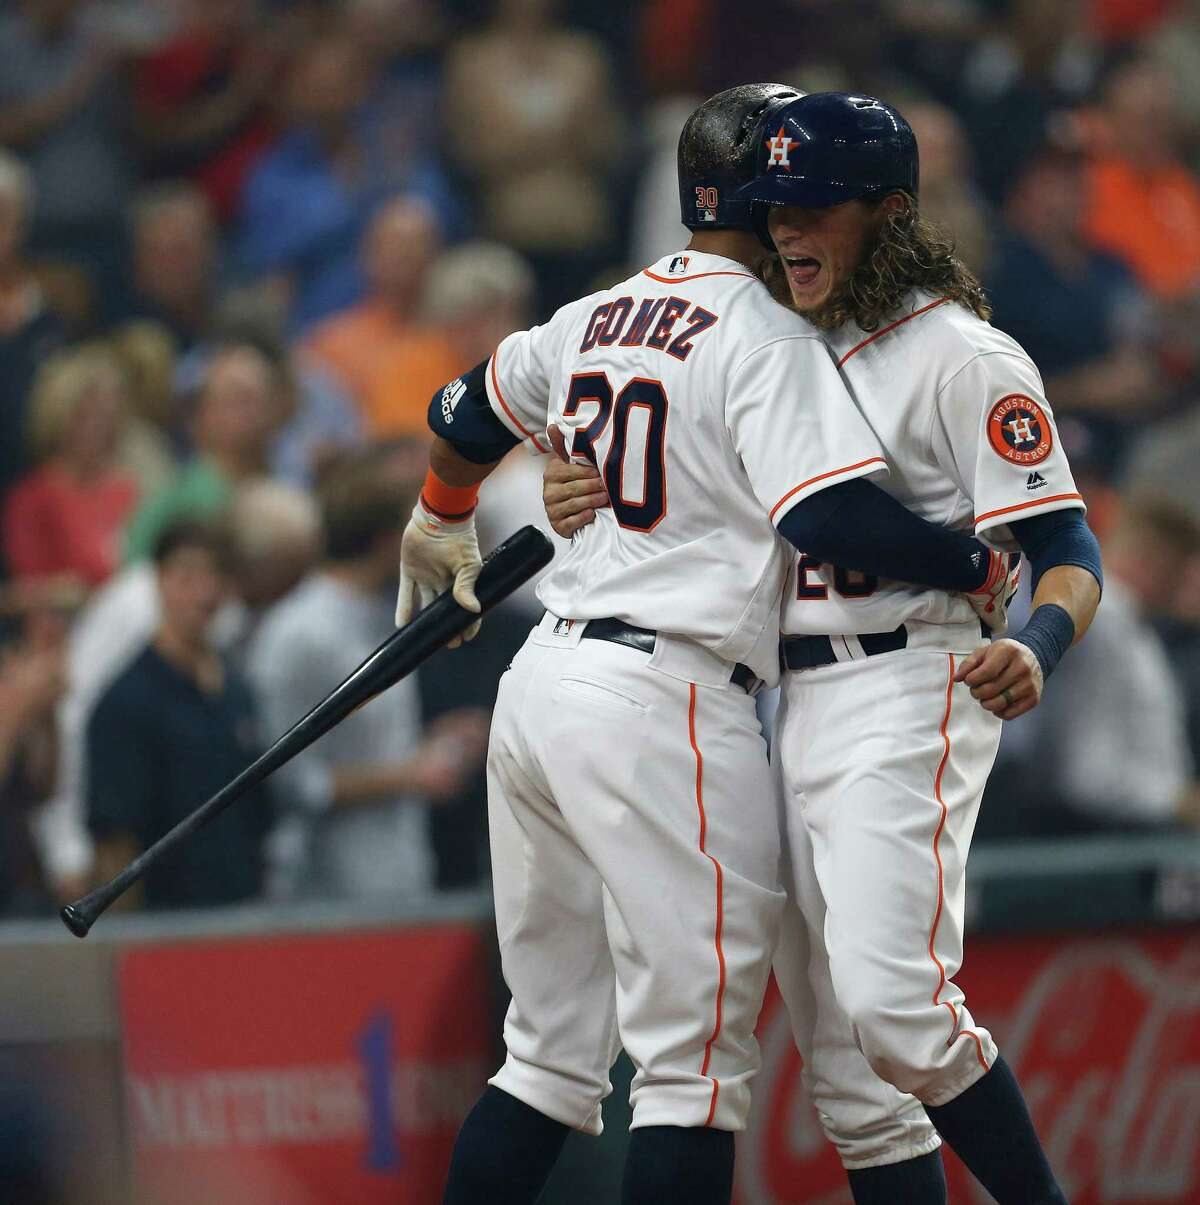 Astros left fielder Colby Rasmus, right, receives a warm welcome from Carlos Gomez after a two-run homer in the first inning set the tone on Monday night.